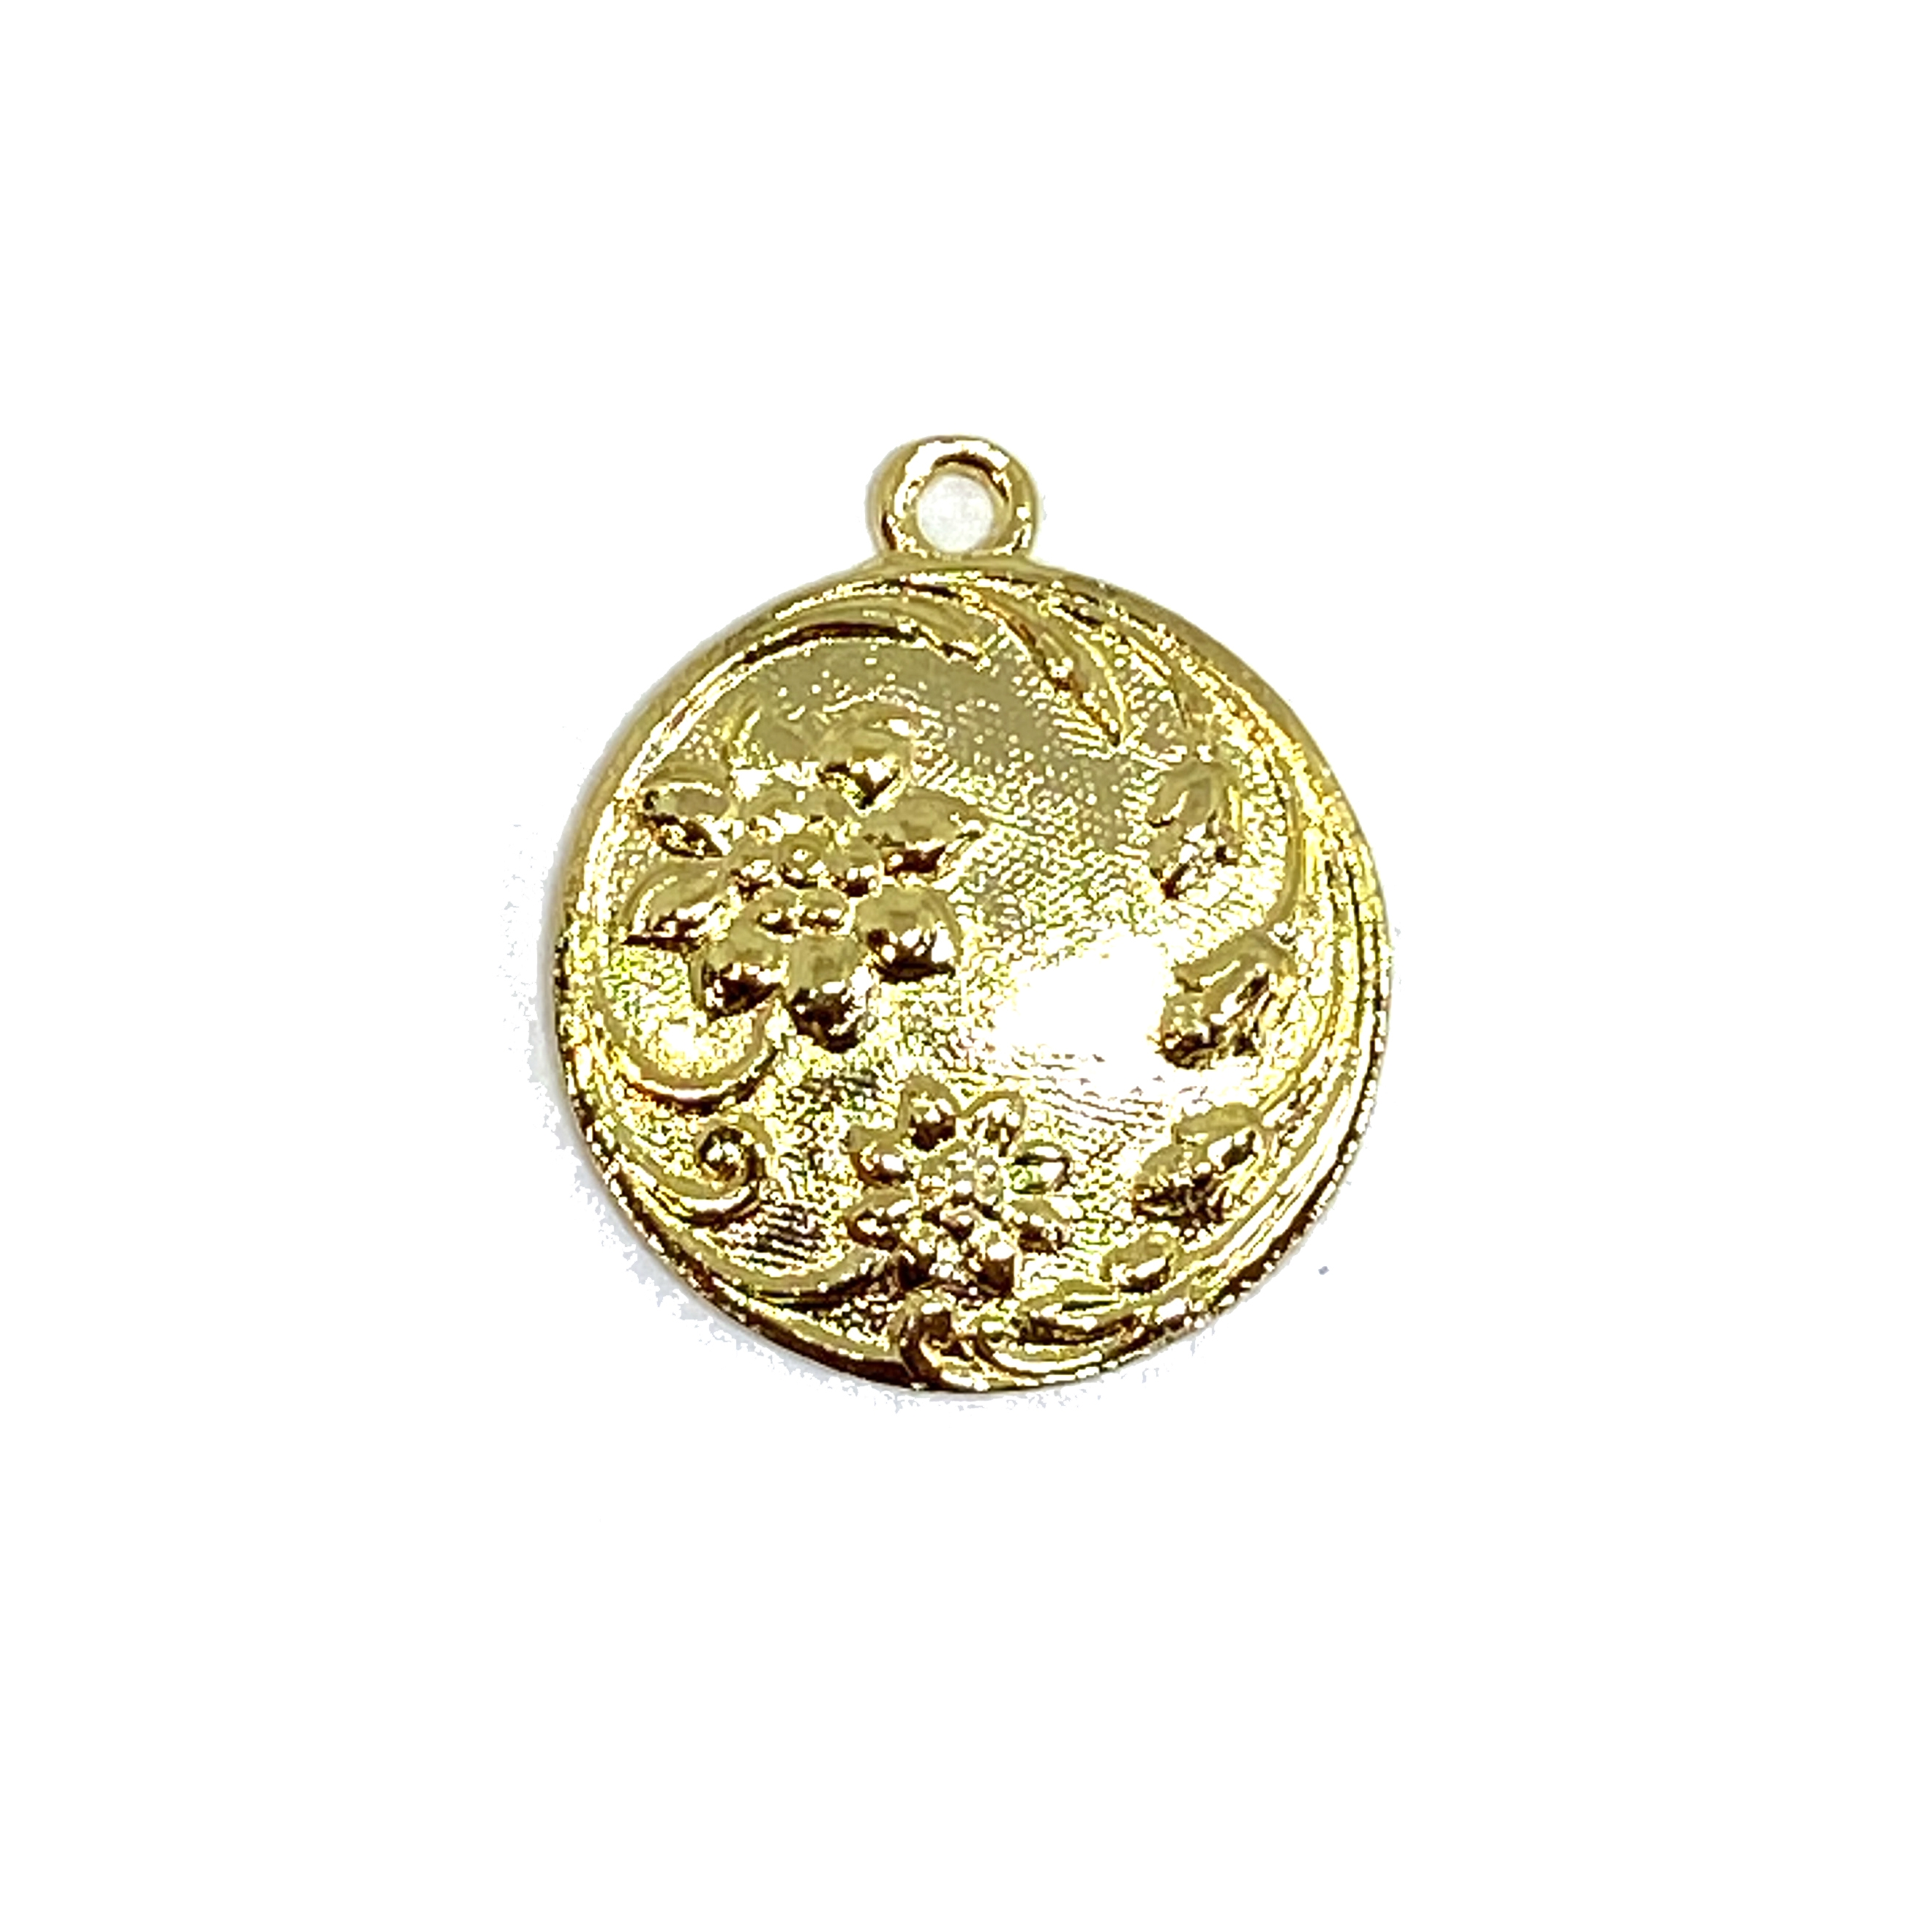 22K gold finish pewter, floral pendant, 01626, gold, B'sue by 1928, lead free pewter castings, cast pewter jewelry findings, made in the USA, 1928 Company, B'sue Boutiques